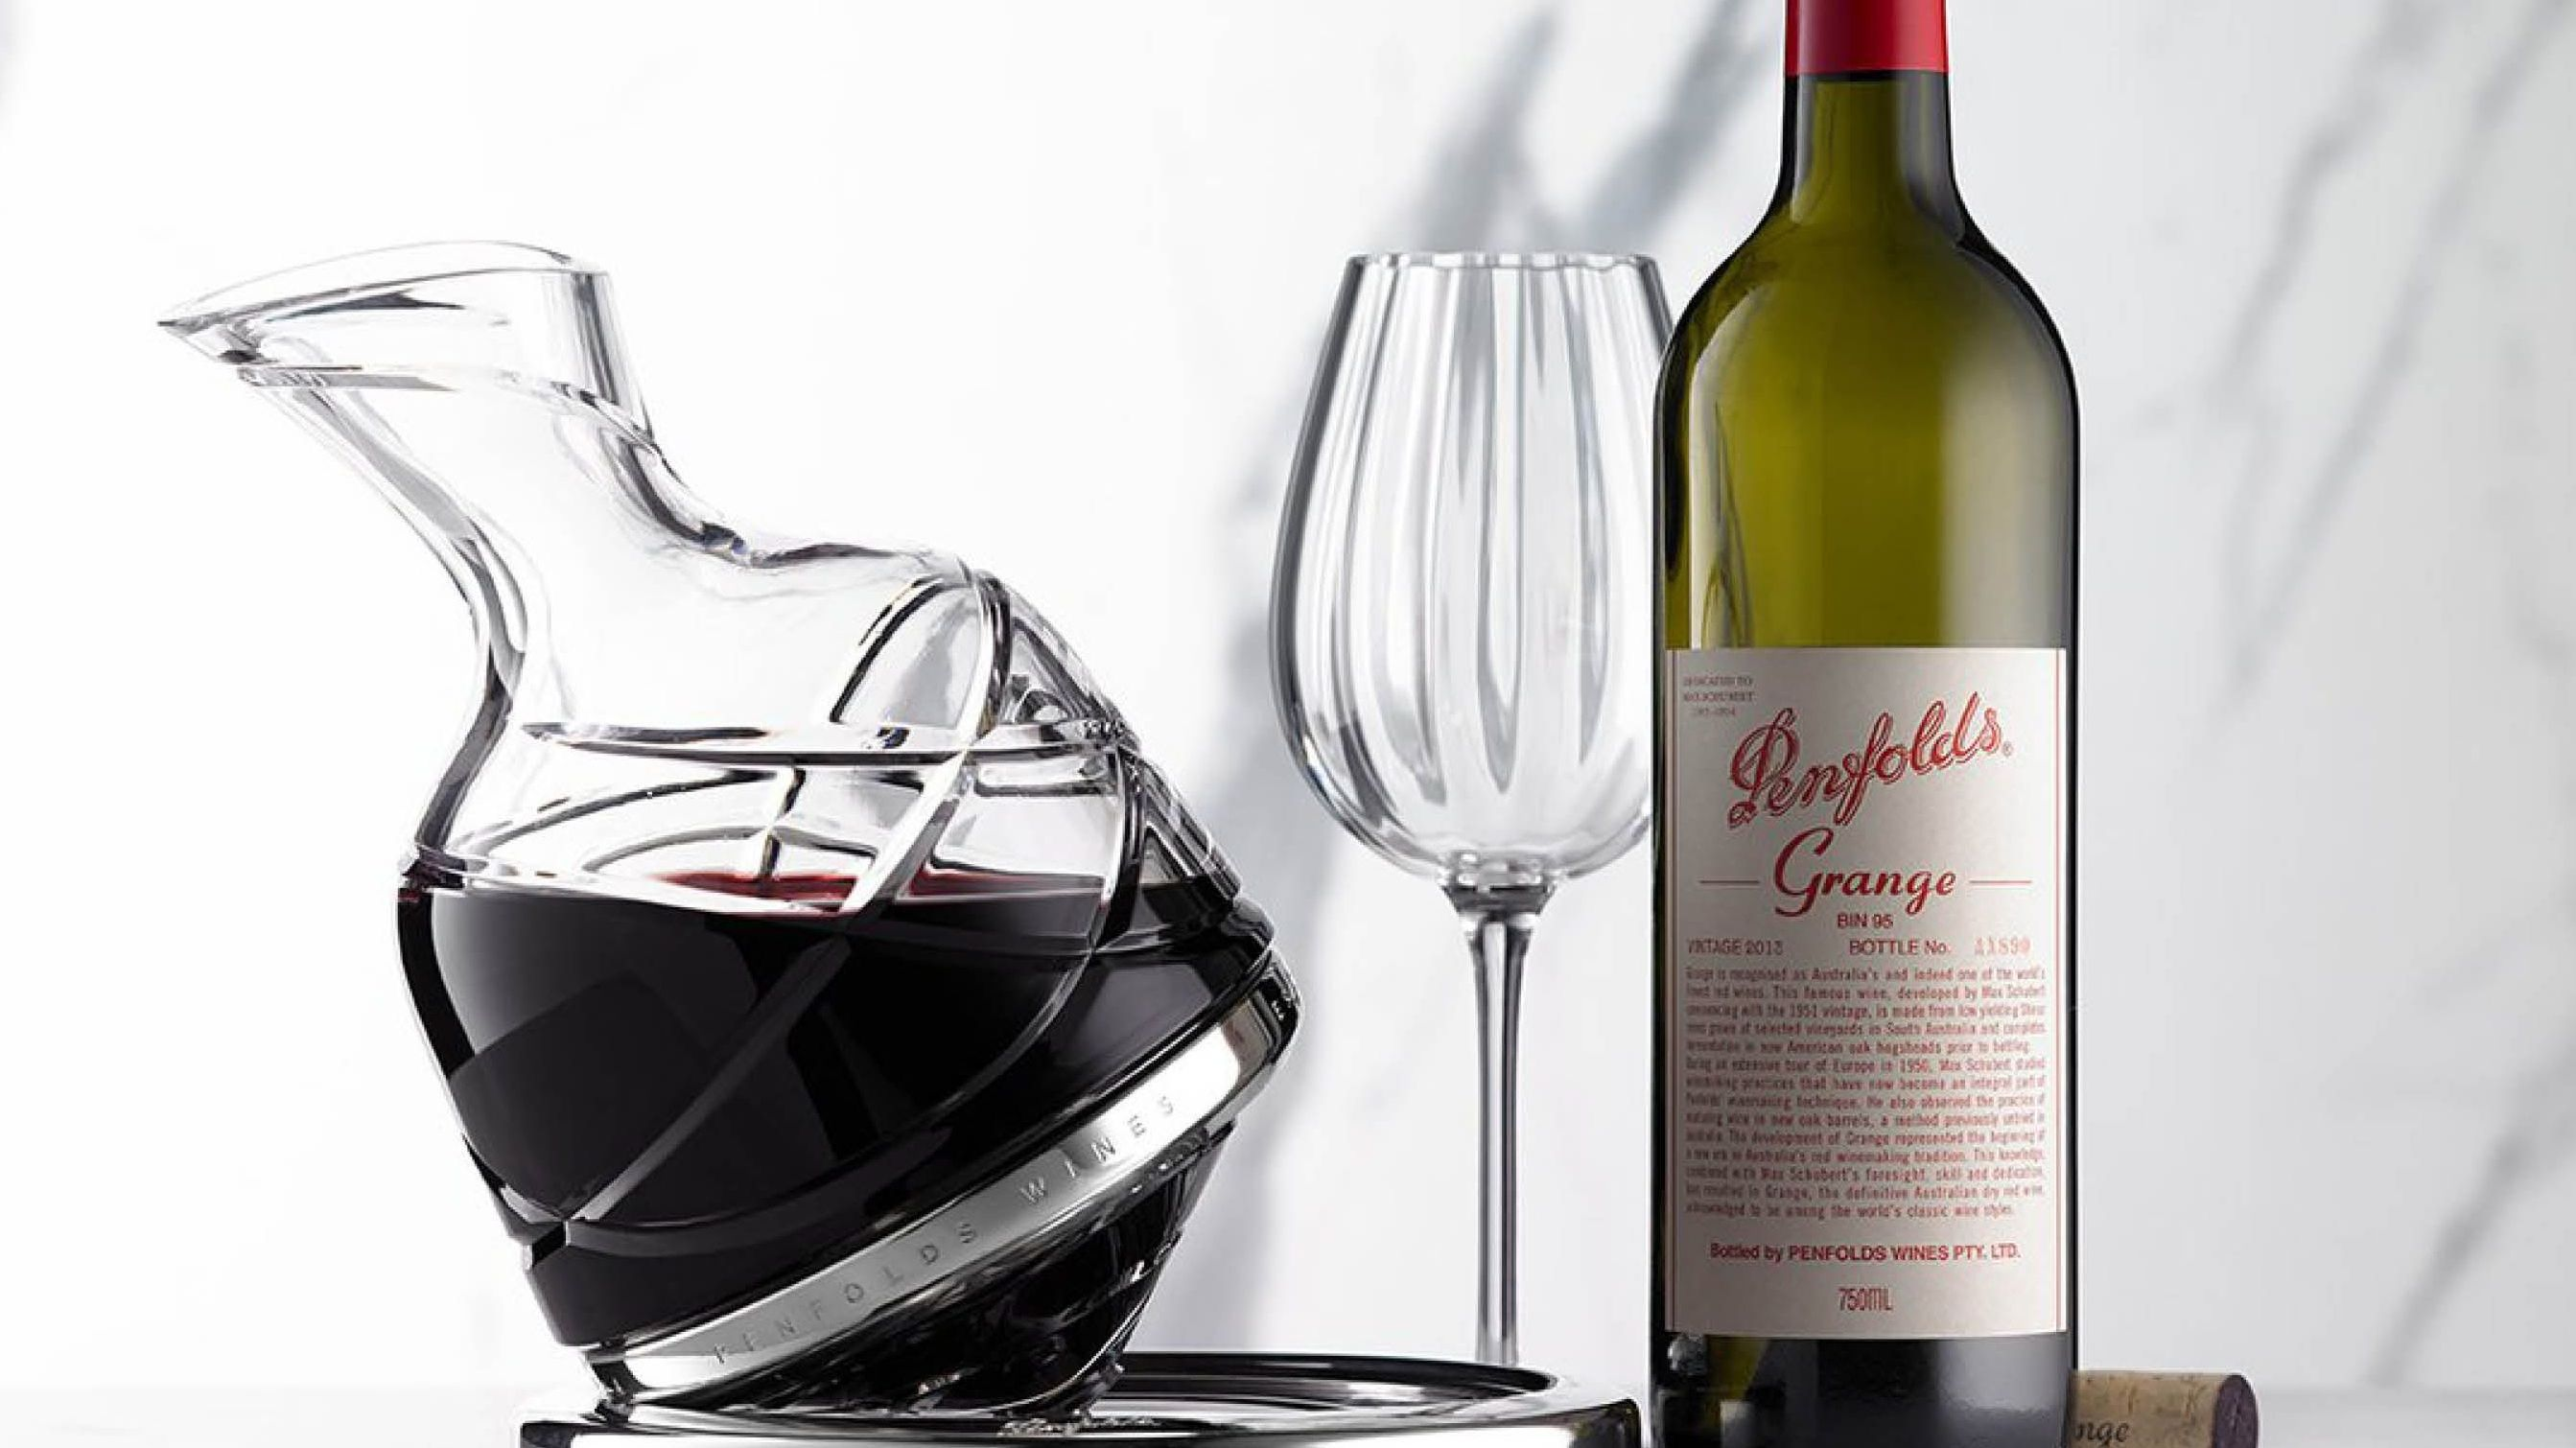 Exquisite Moment with Penfolds Winery